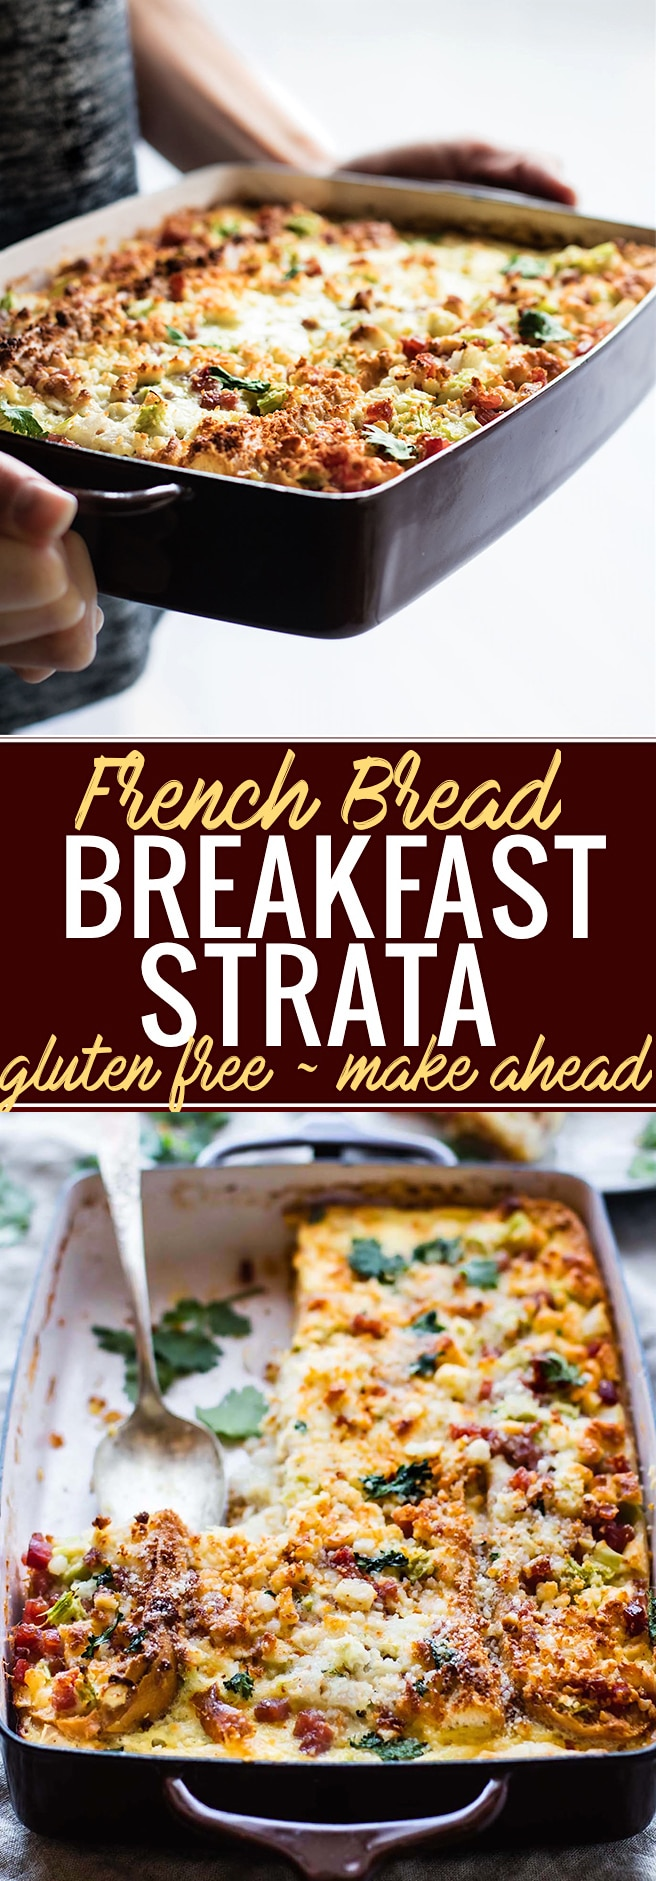 A Gluten Free French Bread Ham Breakfast Strata recipe that's easy-to-follow and will please everyone! Yes, it does exist! A Breakfast Casserole you can make ahead or bake in 30 minutes. Layers of breakfast staples like eggs, French bread, ham, veggies, and more. Great for a gluten free Brunch or Holiday table! @cottercrunch